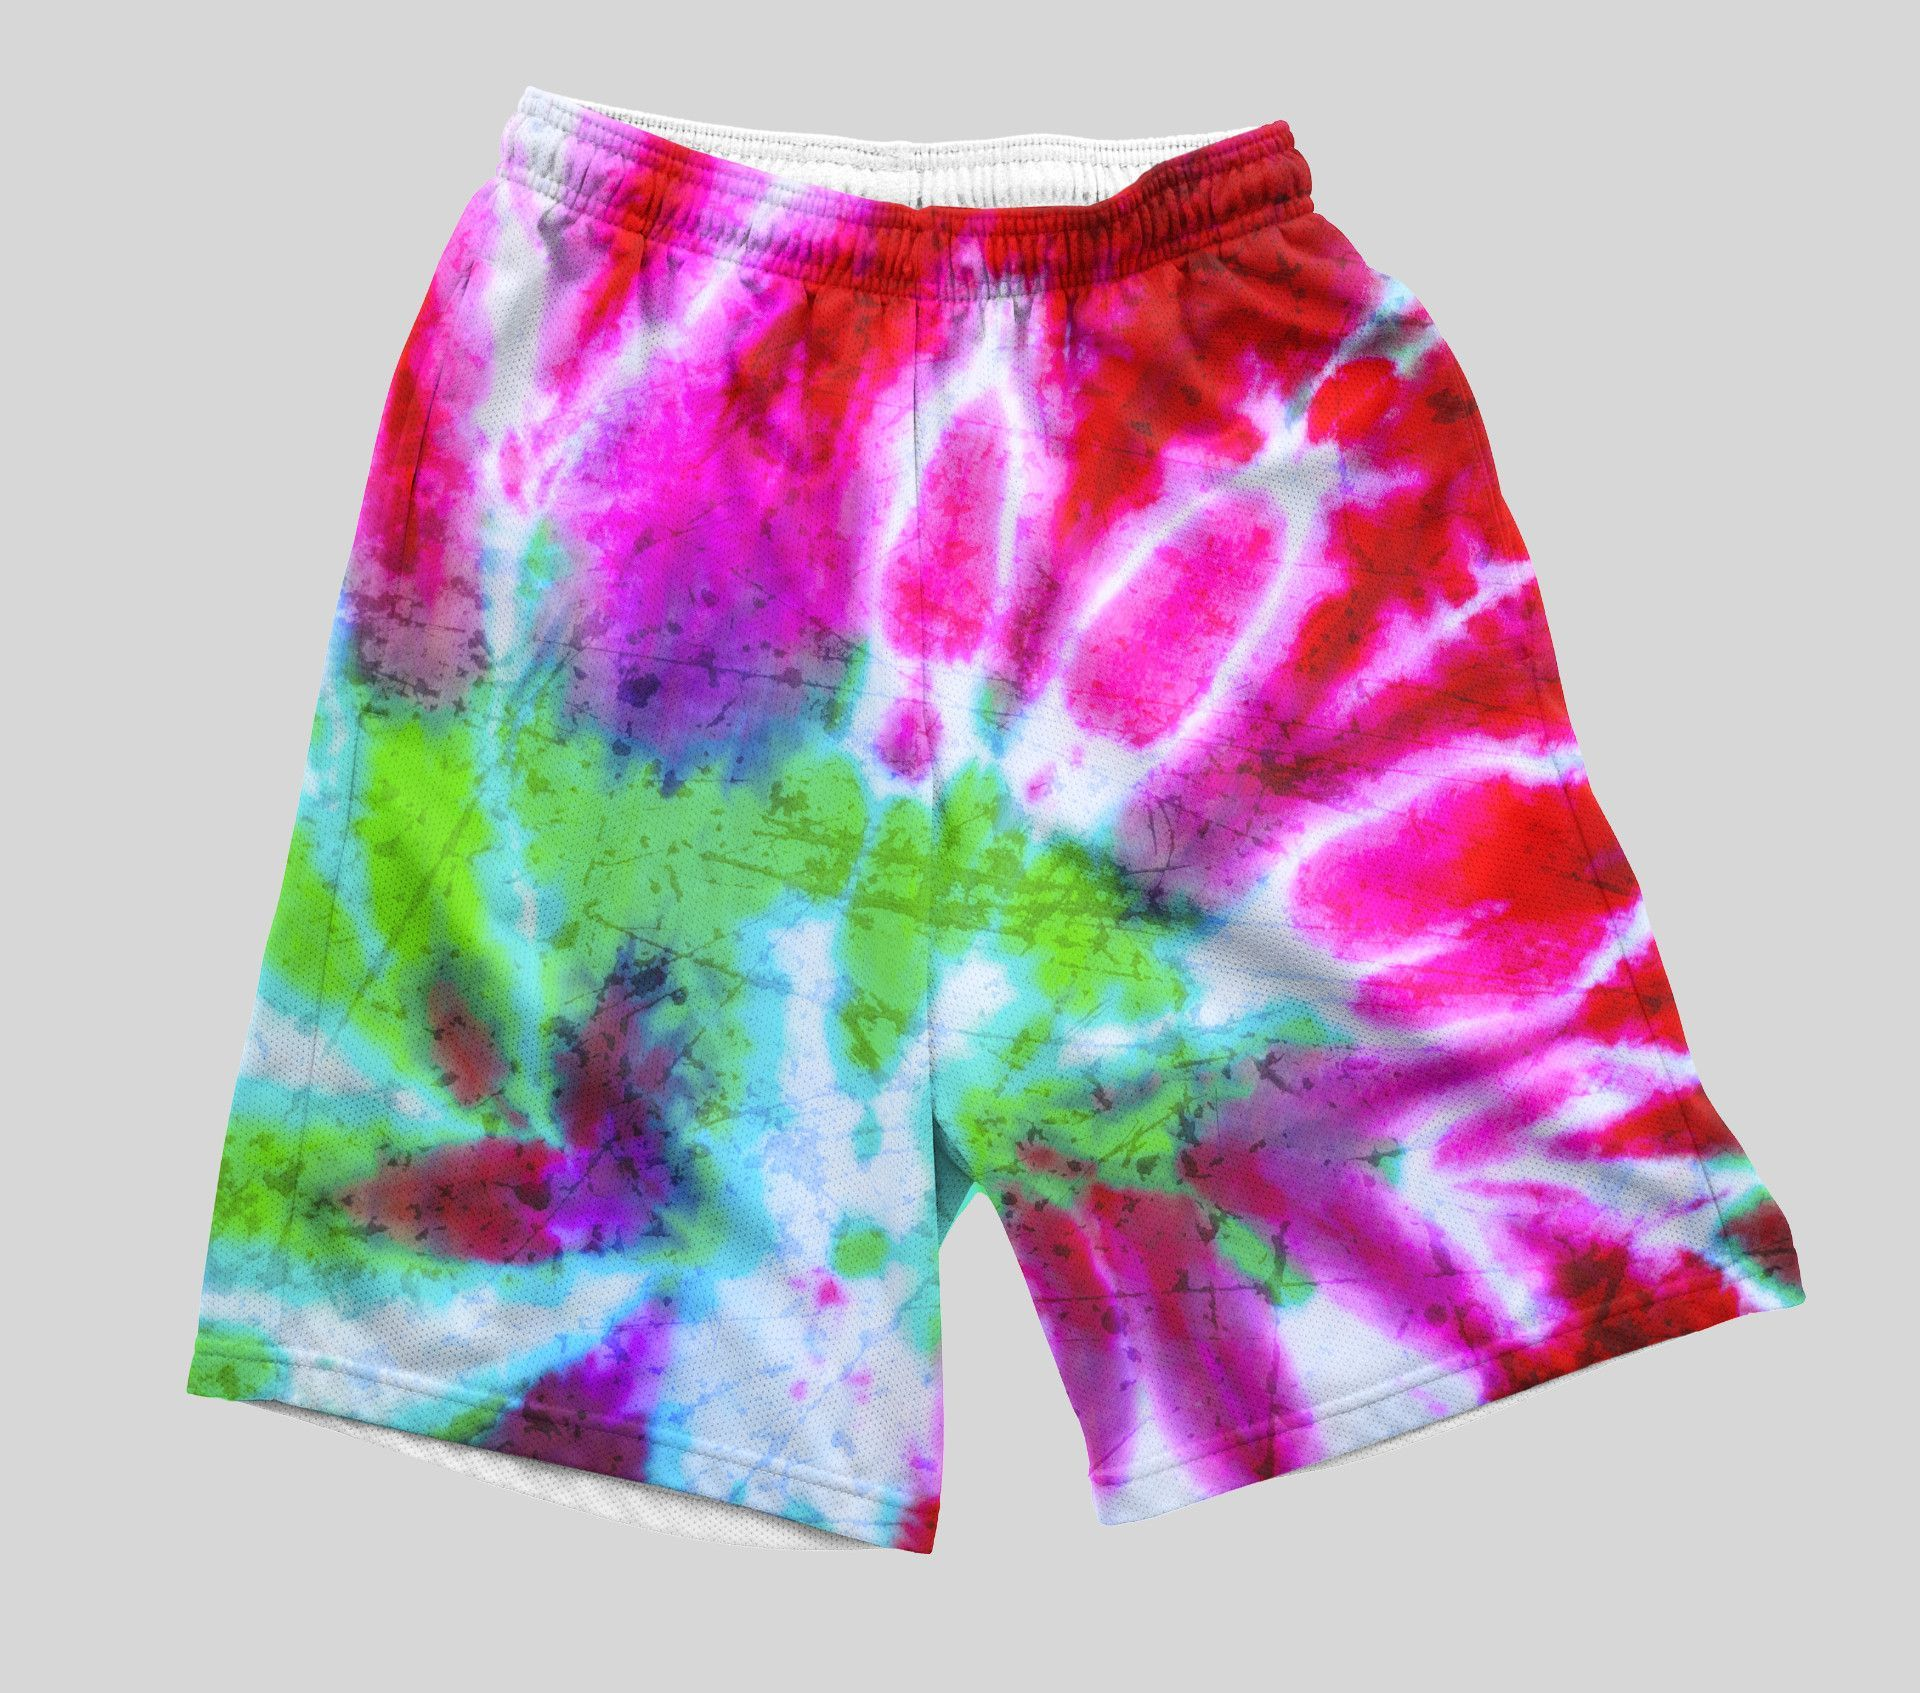 Troll Tie Dye Shorts  Tie dye shorts and Products